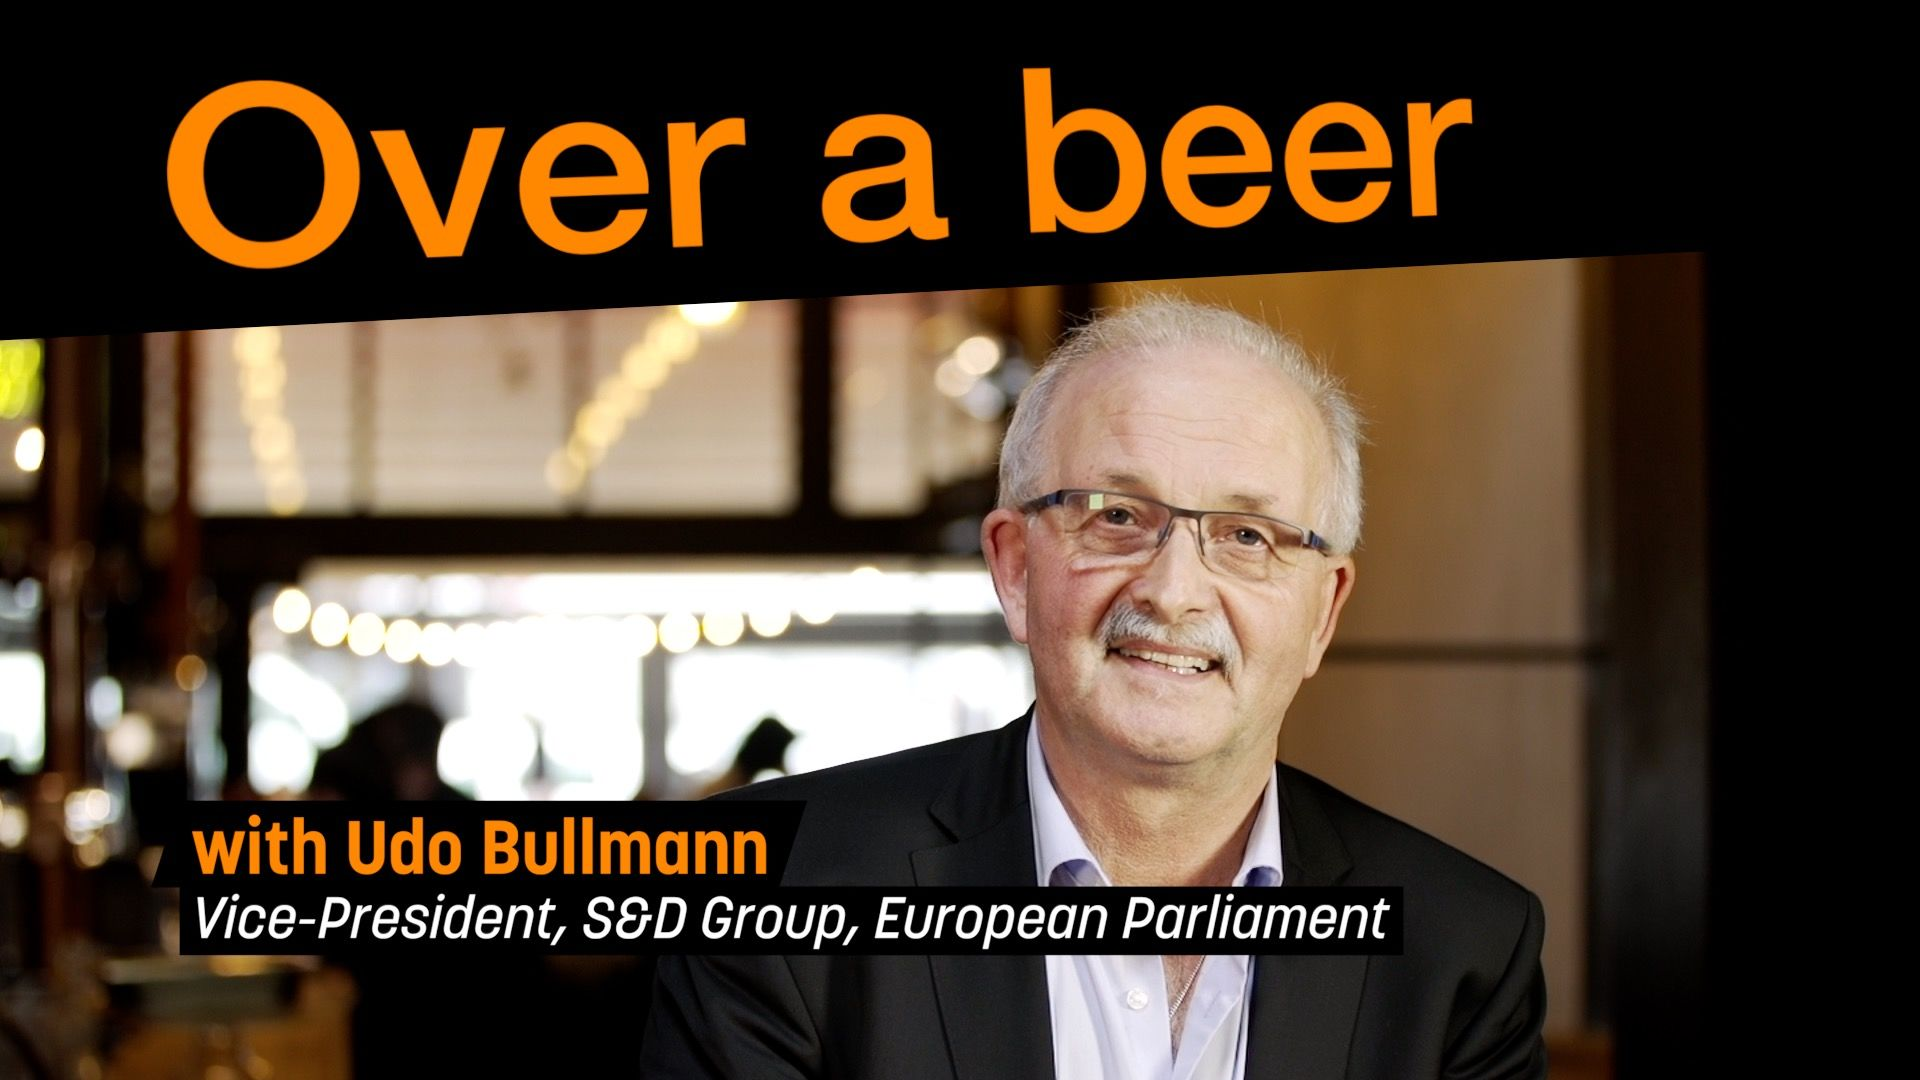 Over a Beer with Udo Bullmann